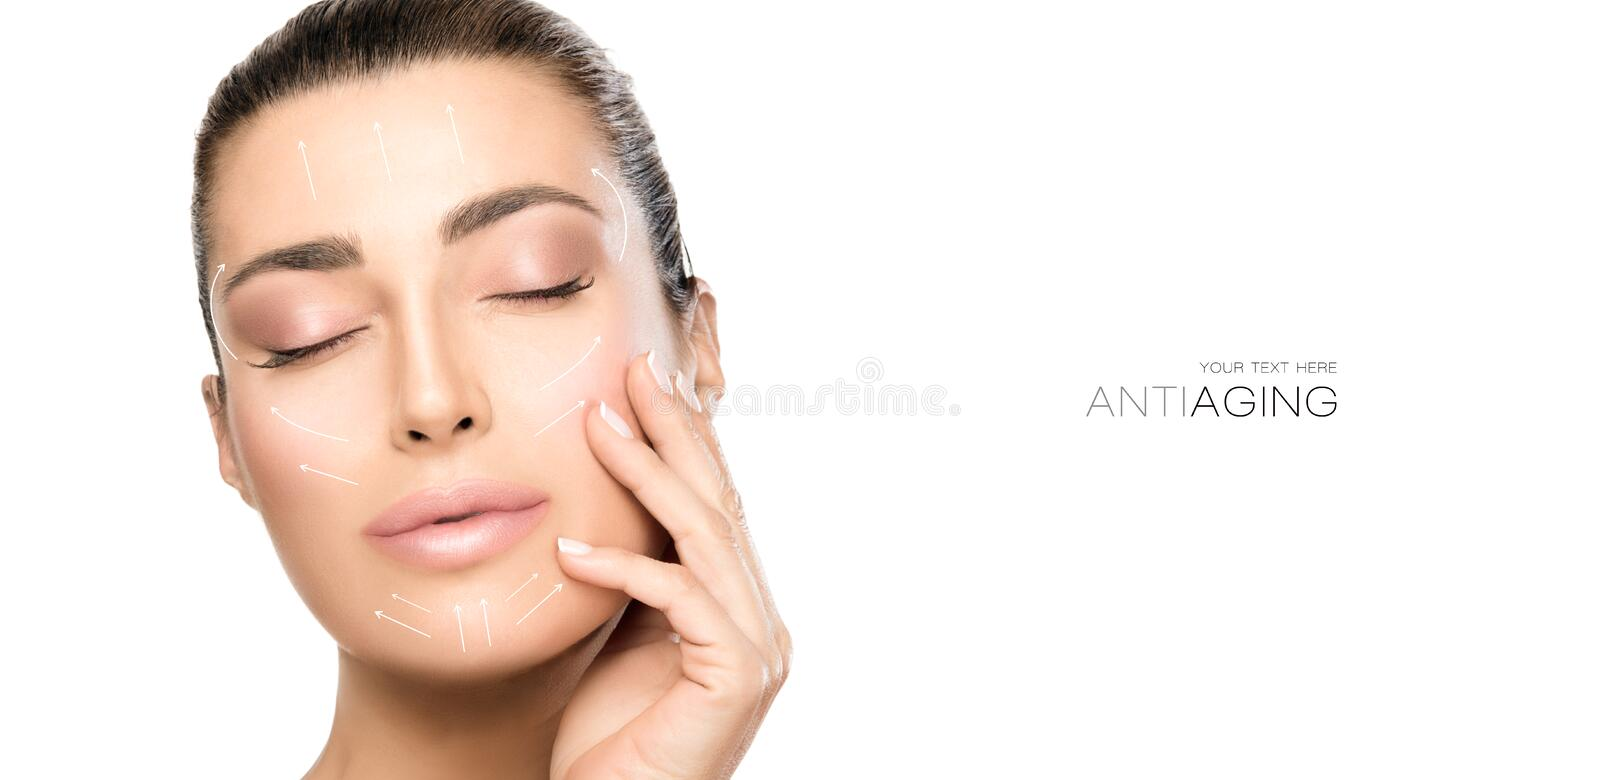 Beauty Face Spa Woman. Surgery and Anti Aging Concept. Anti aging treatment and plastic surgery concept. Beautiful young woman with hand on cheek and eyes closed royalty free stock photos